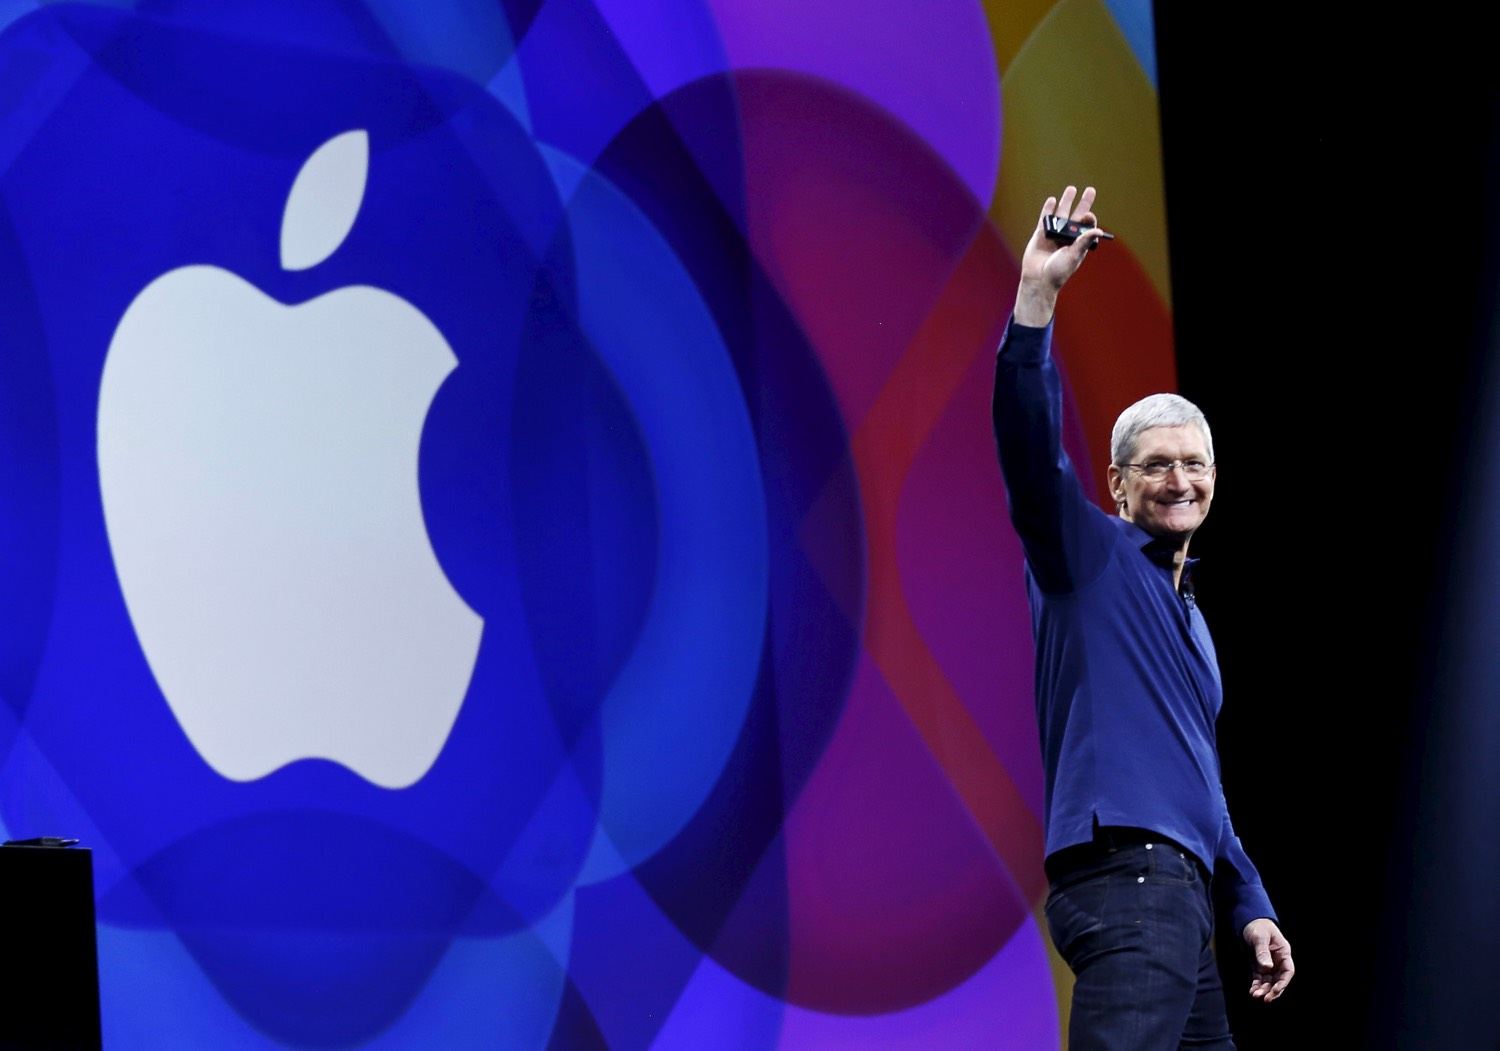 Apple CEO Tim Cook at 2015 WWDC. REUTERS